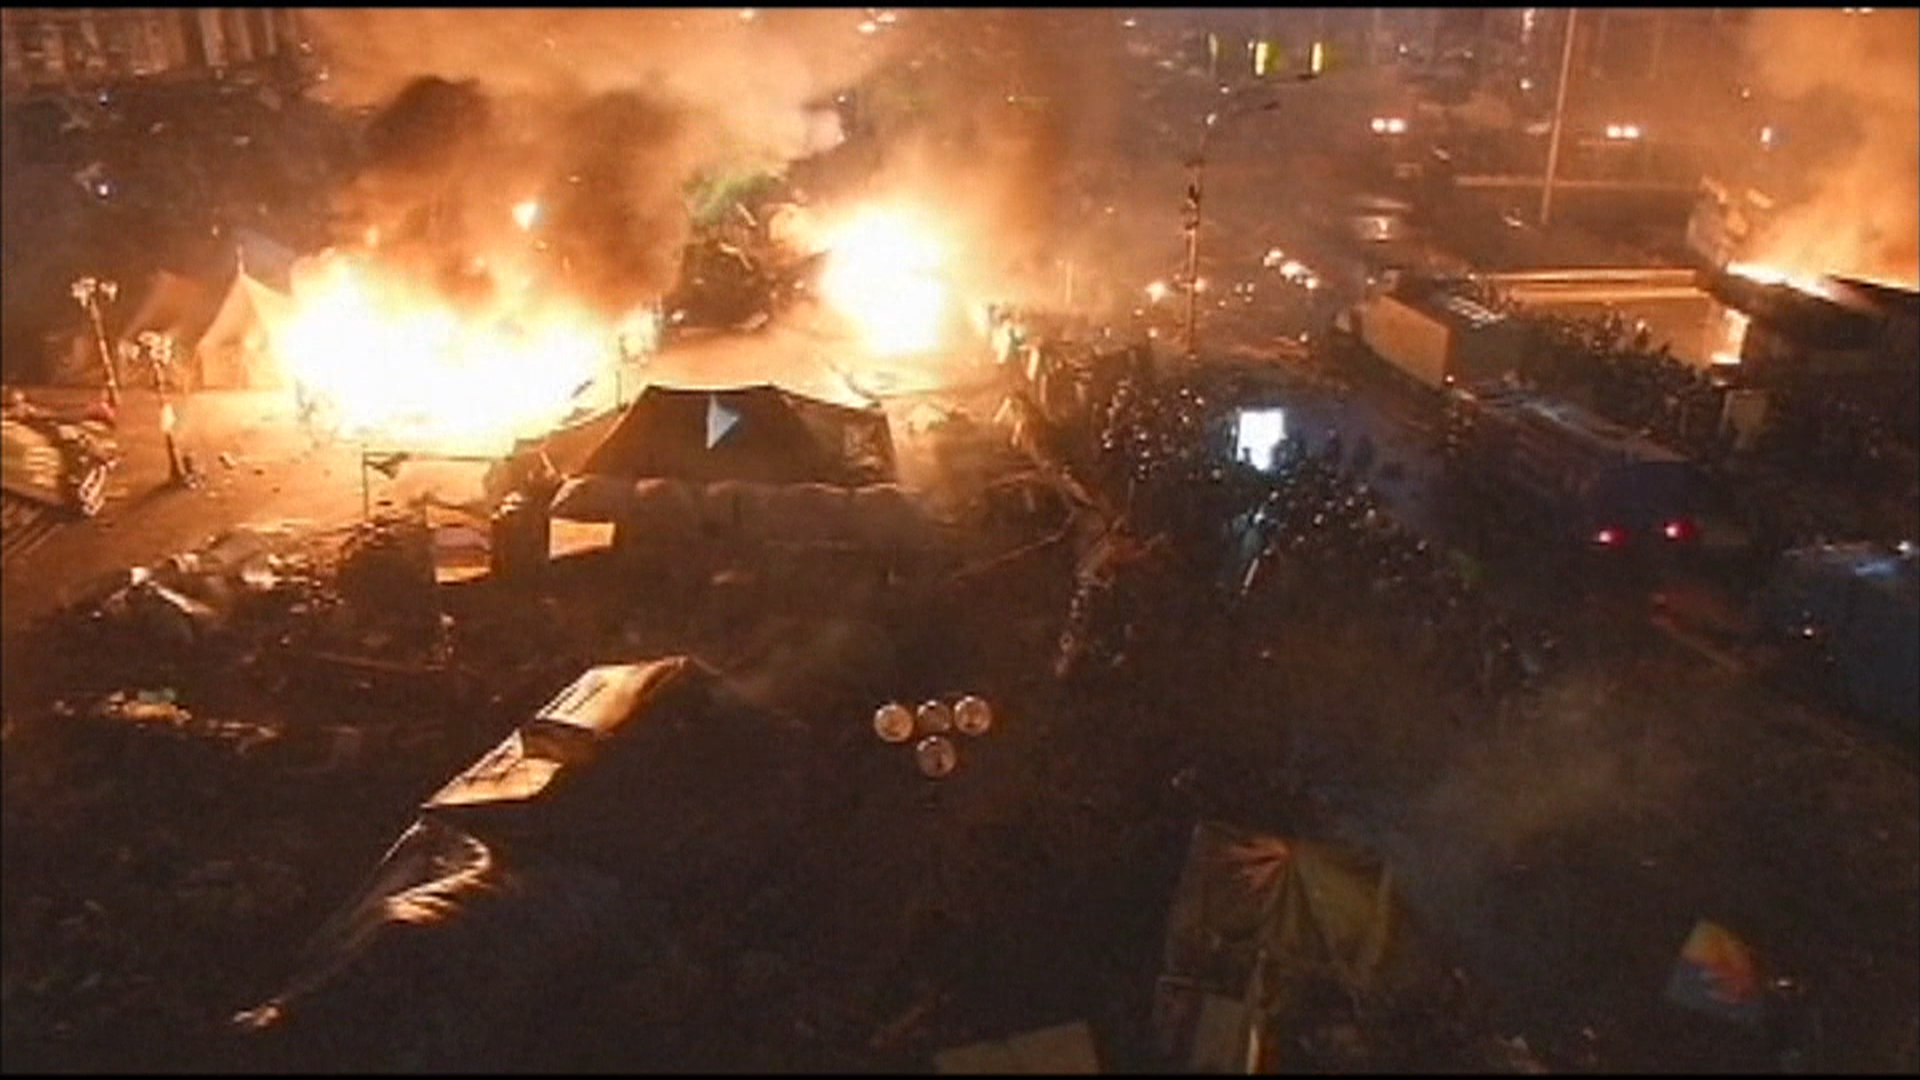 What Are Ukrainians Fighting For? 5 Things to Know About Unrest